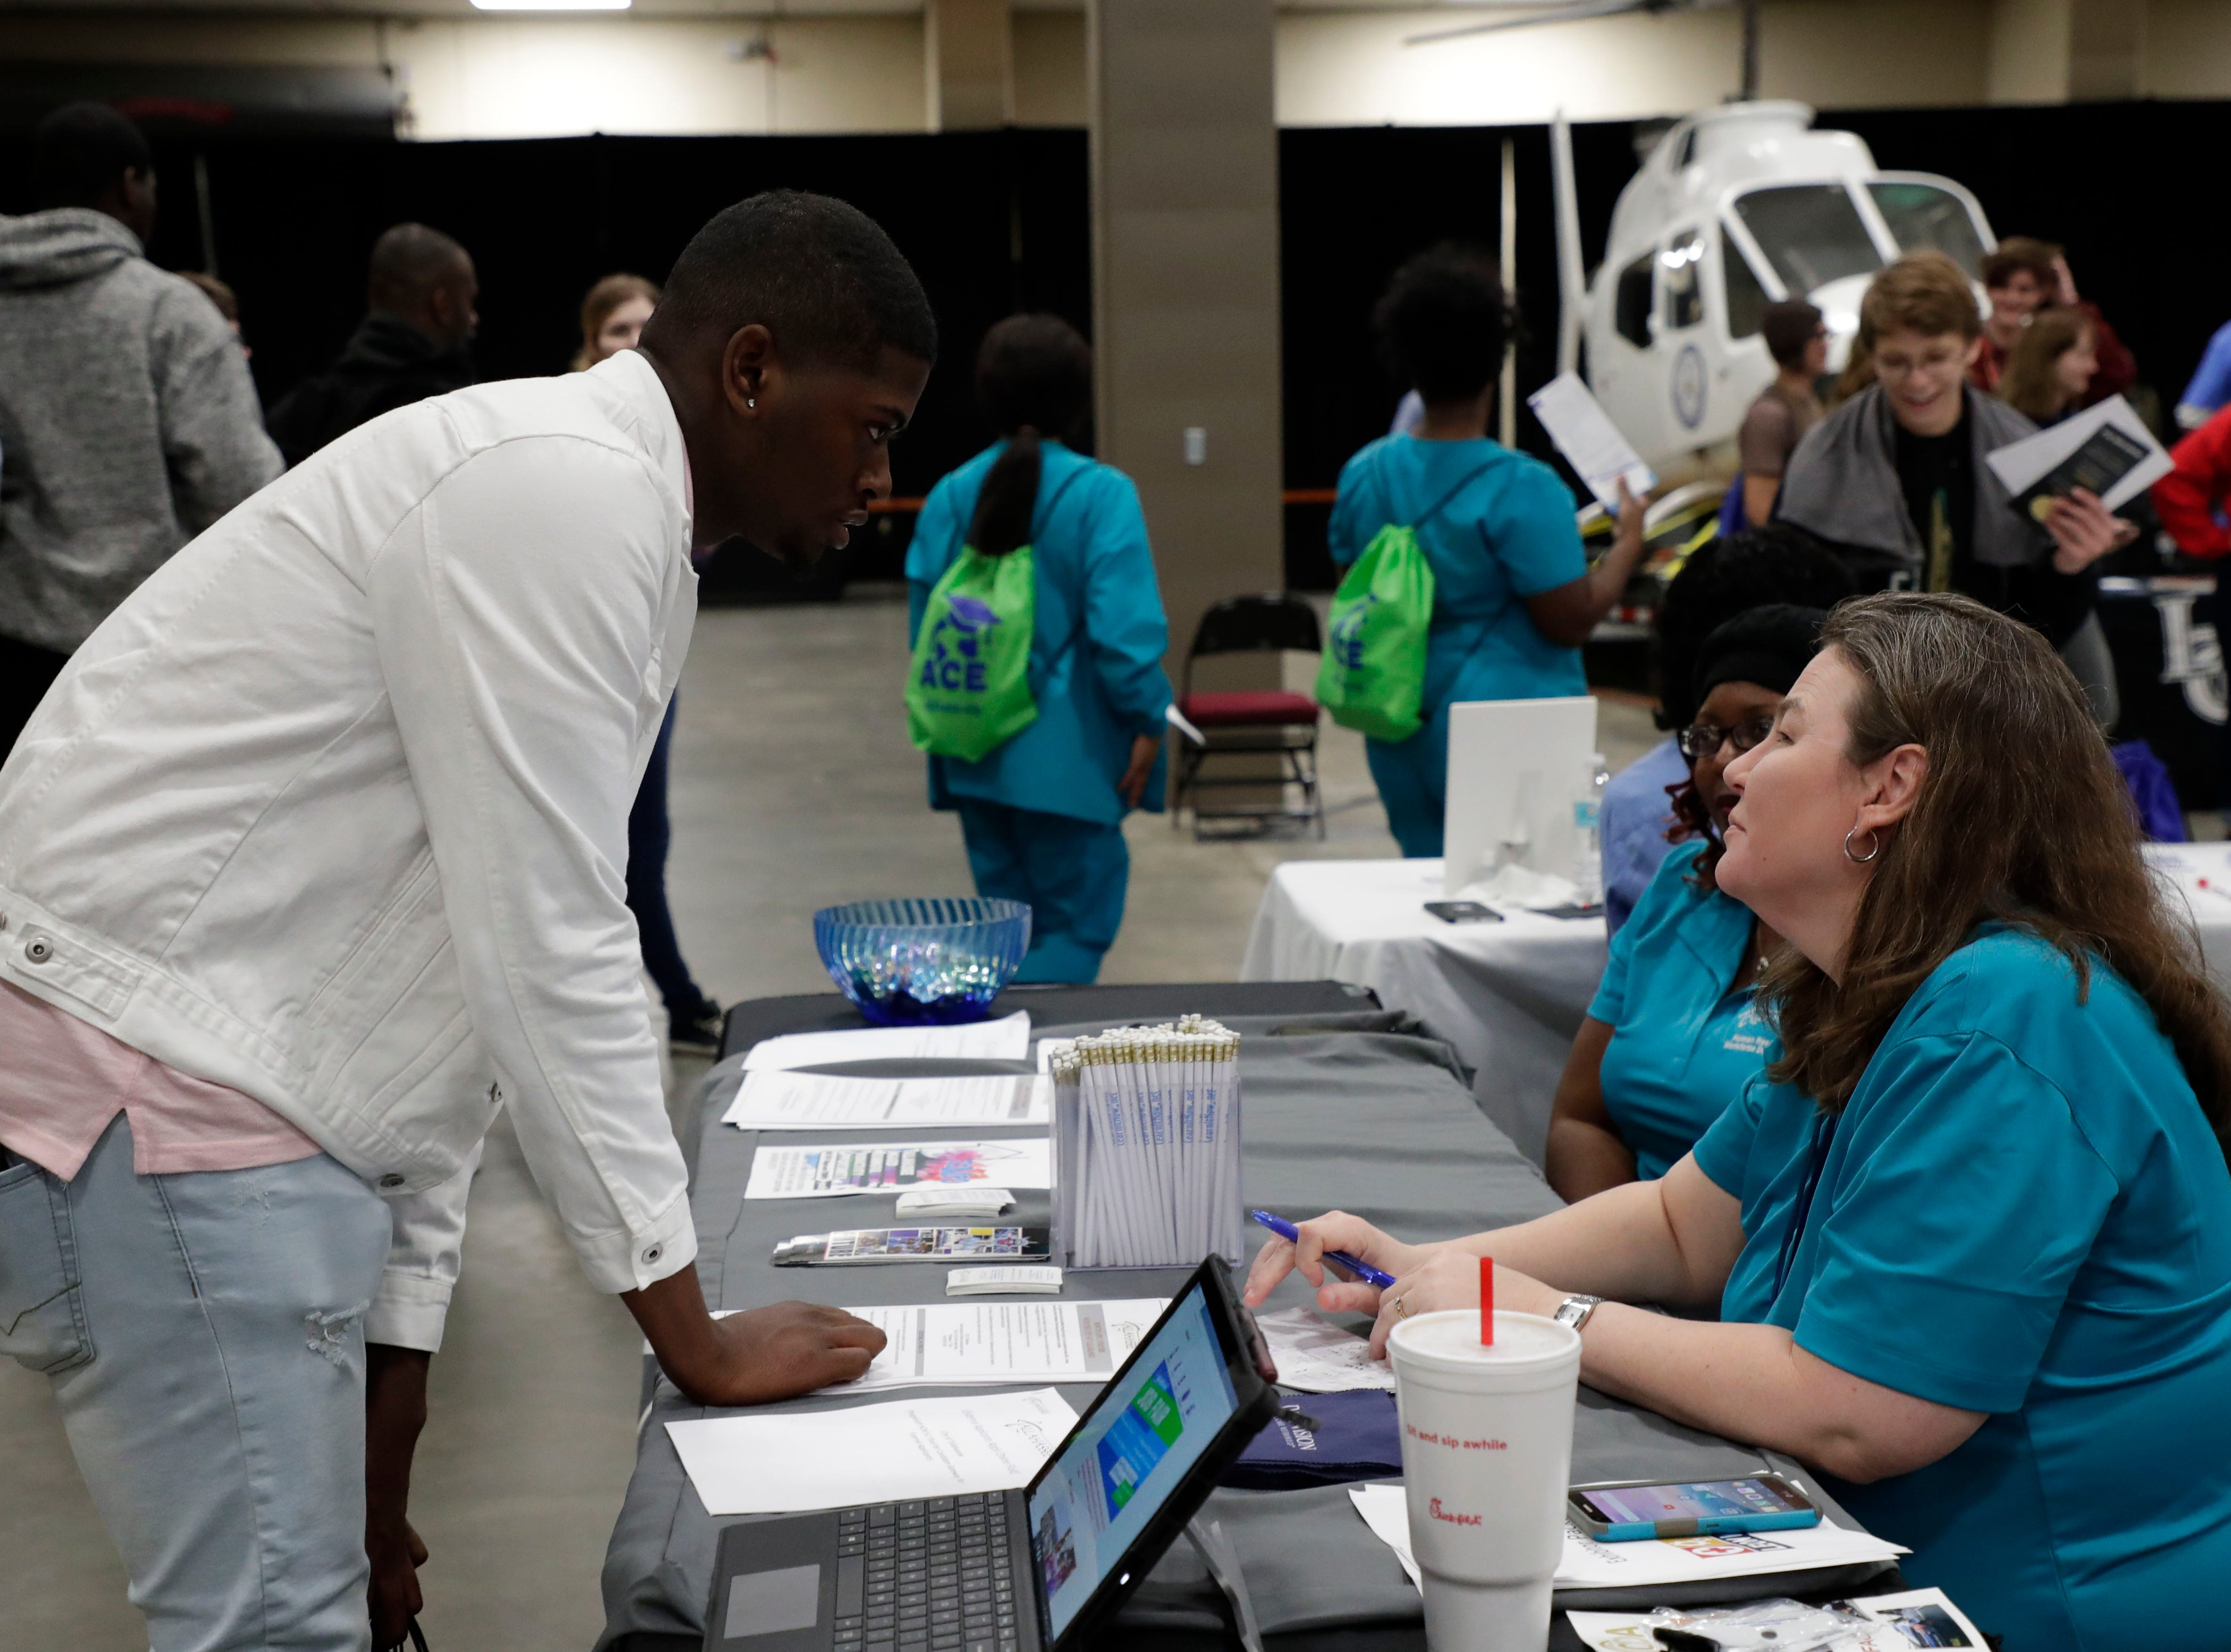 Donte Jackson, a senior at Rickards High School, talks with Kelly Perkins, a Human Resources information analyst with the City of Tallahassee. High school students throughout Leon County attended the Leon Works Expo at the Tucker Civic Center Friday March 8, 2019.